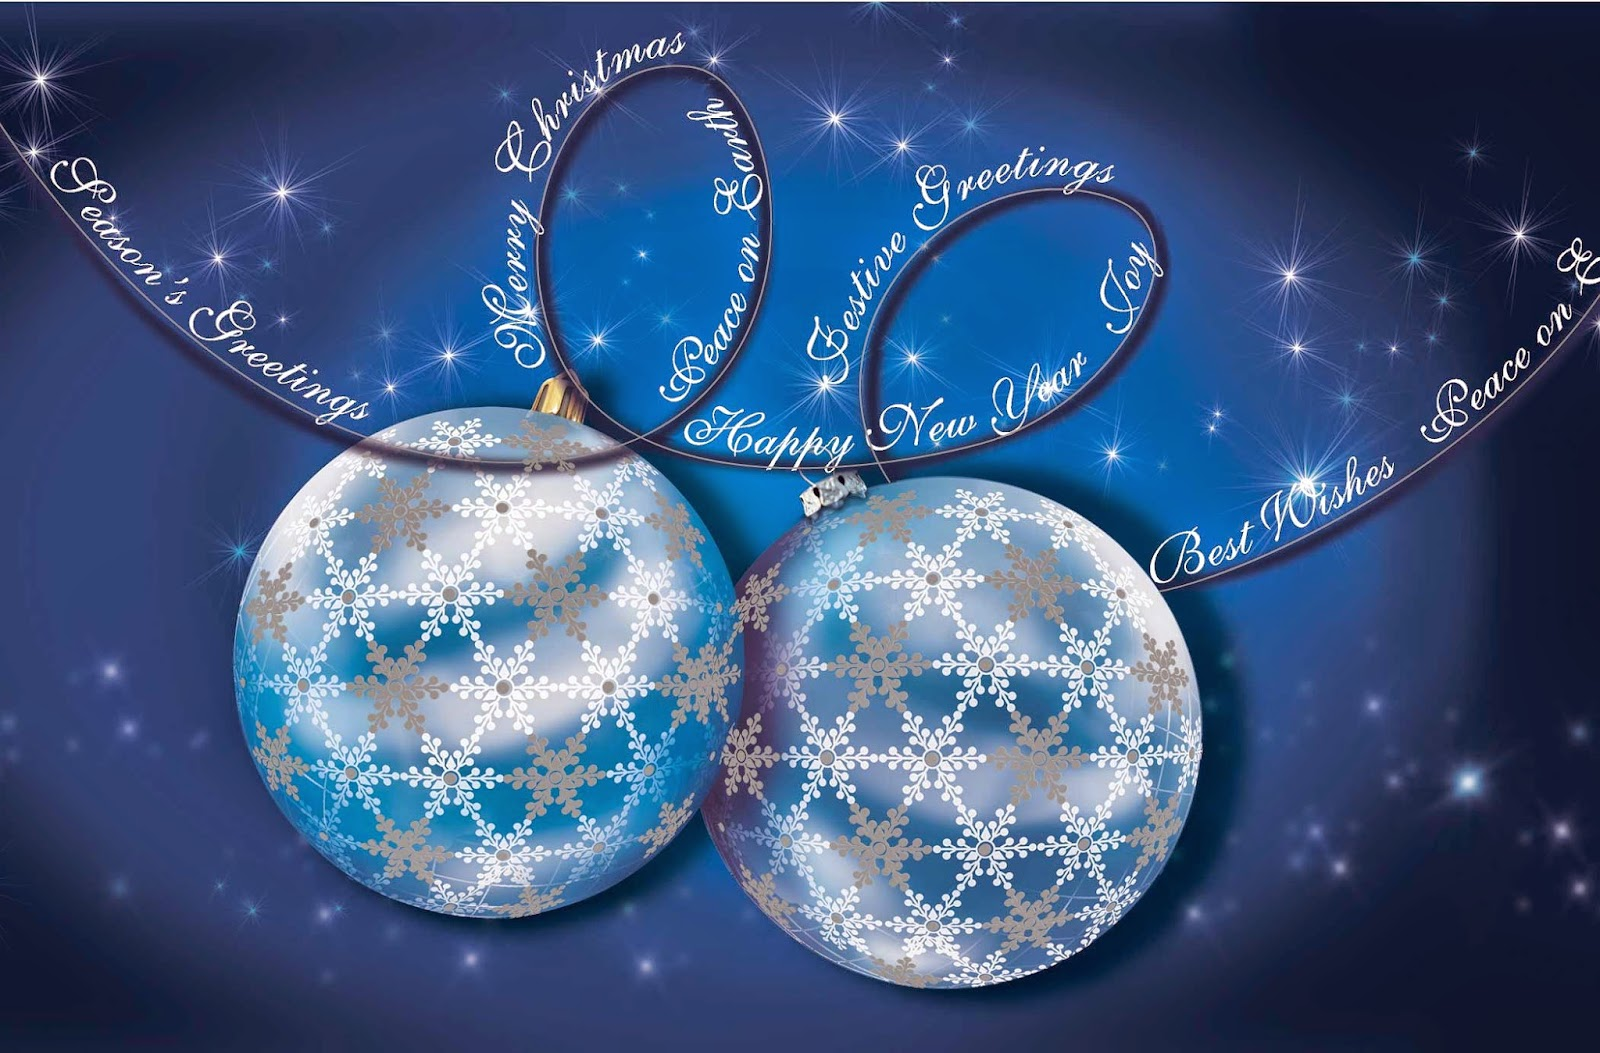 Christmas Greeting Cards And Christmas Cards Download